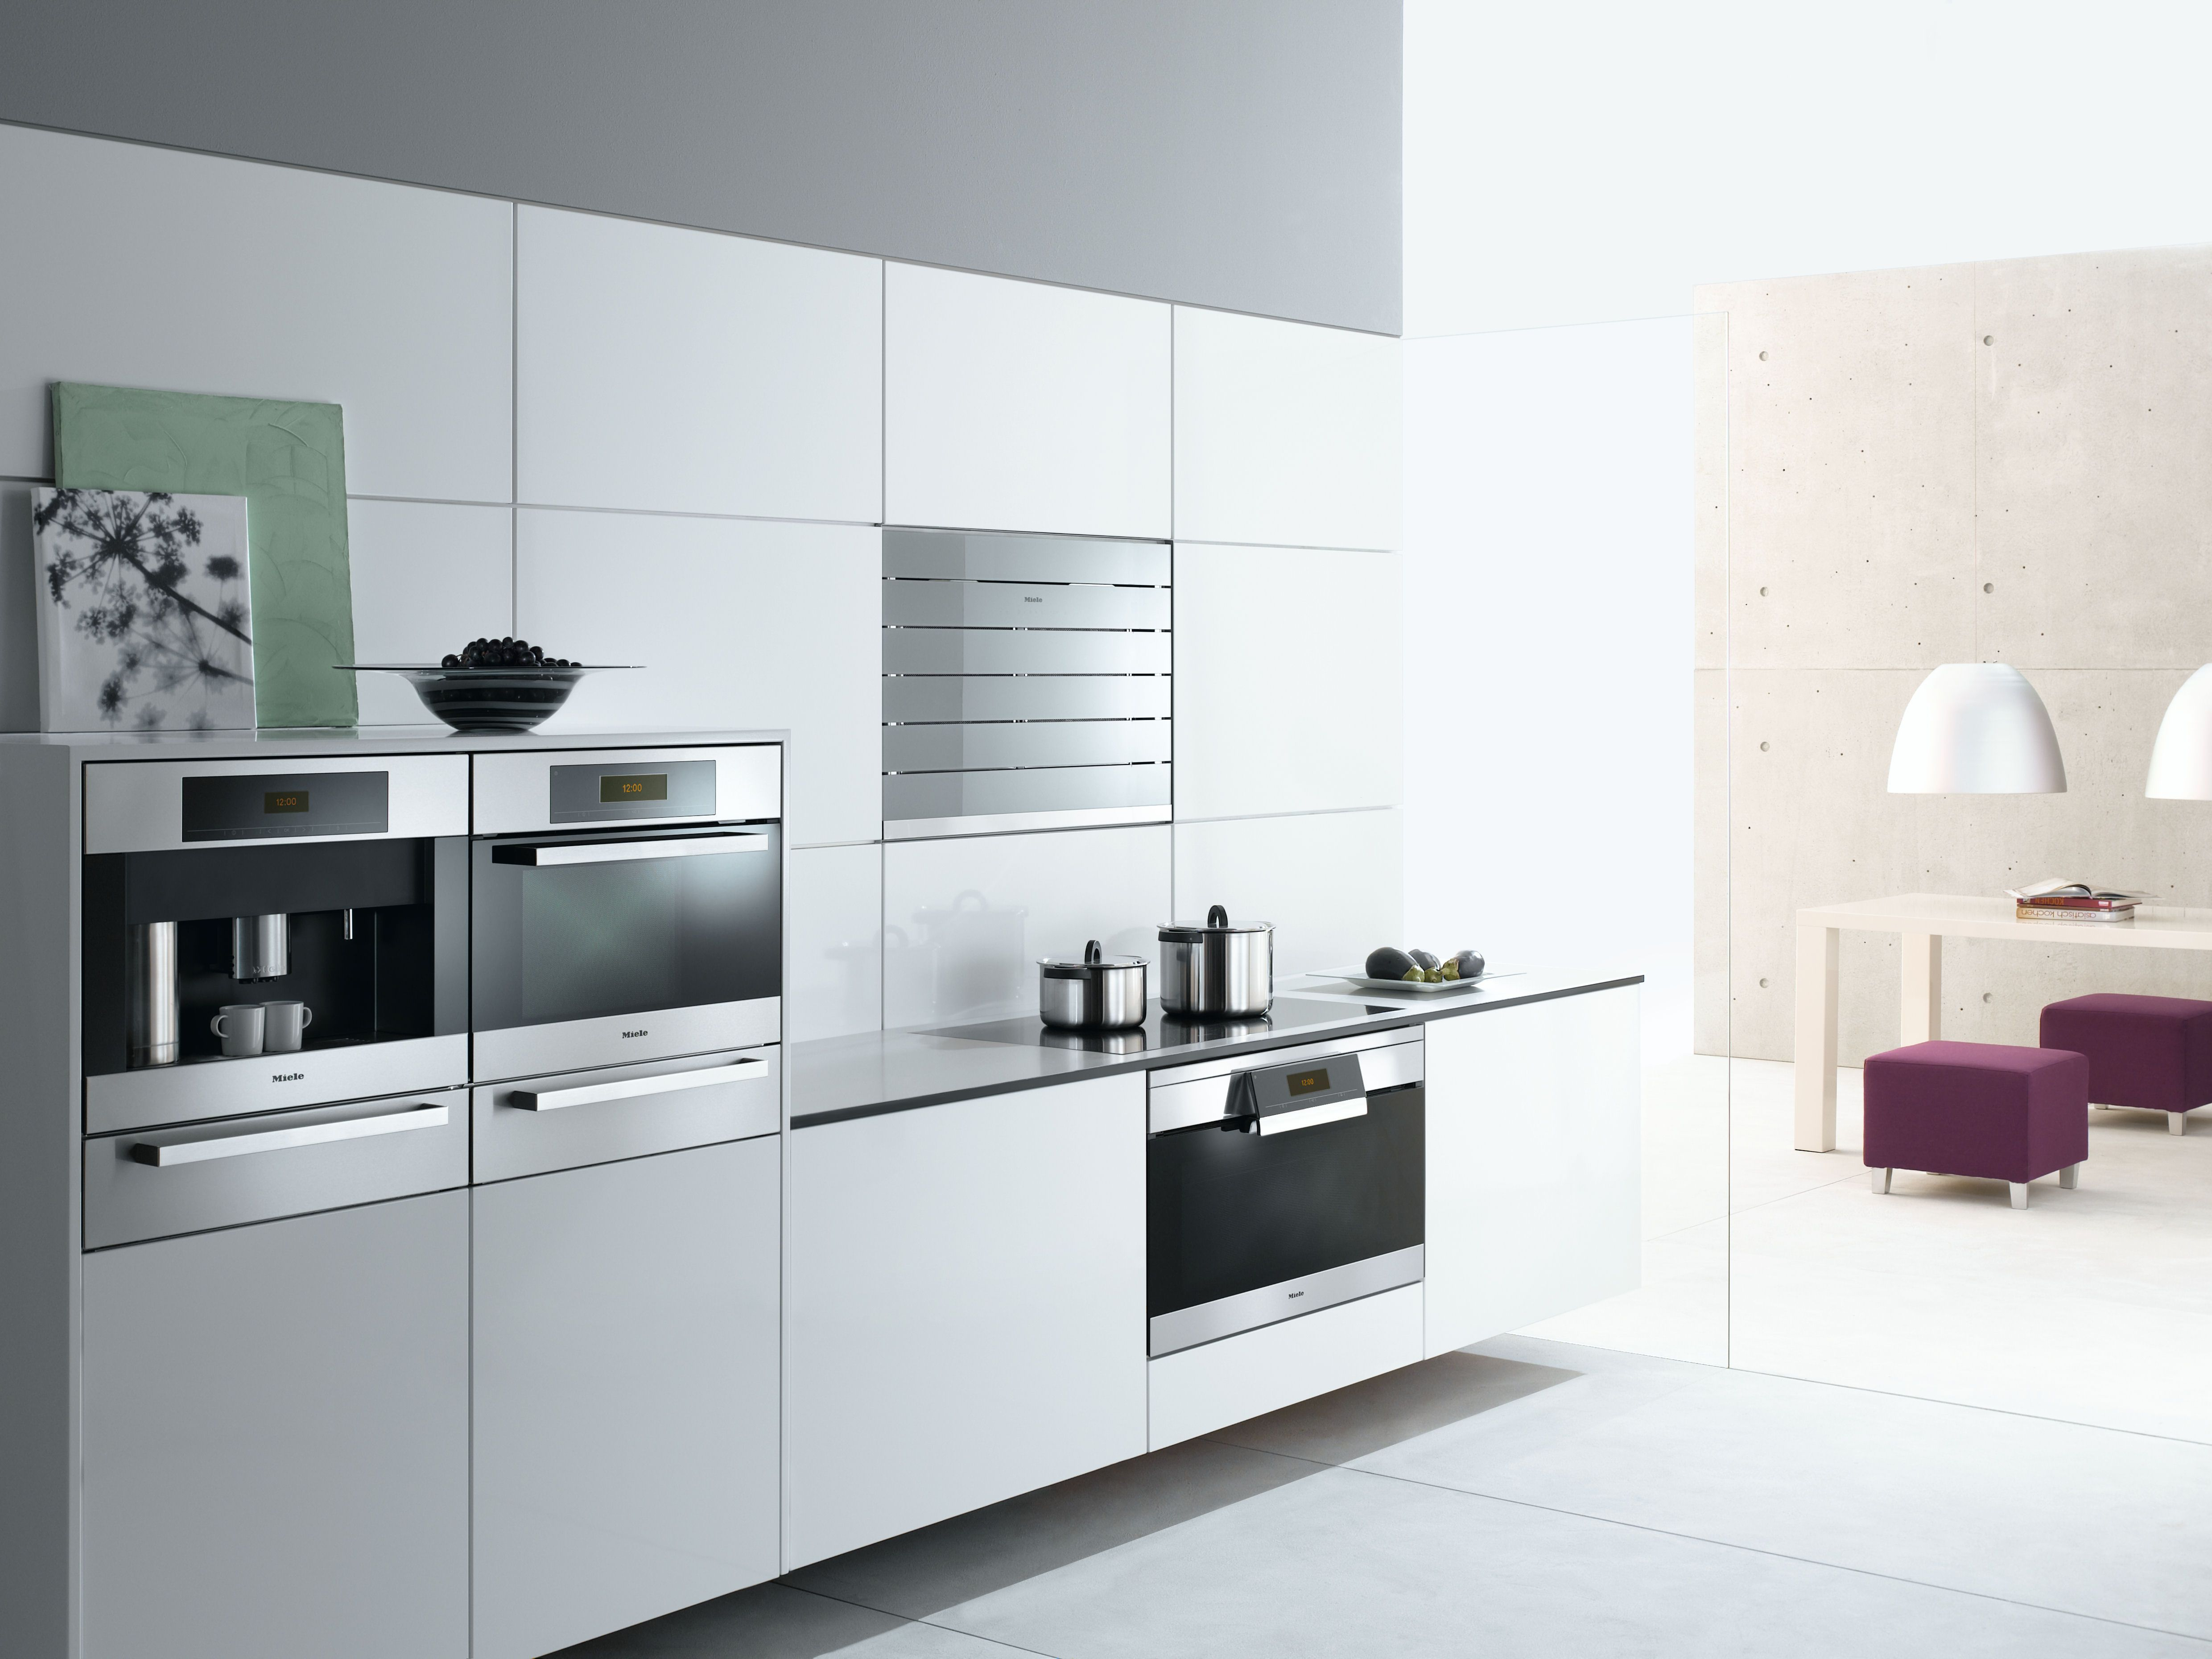 Miele Kitchen Appliances White Small Table Modern With In The